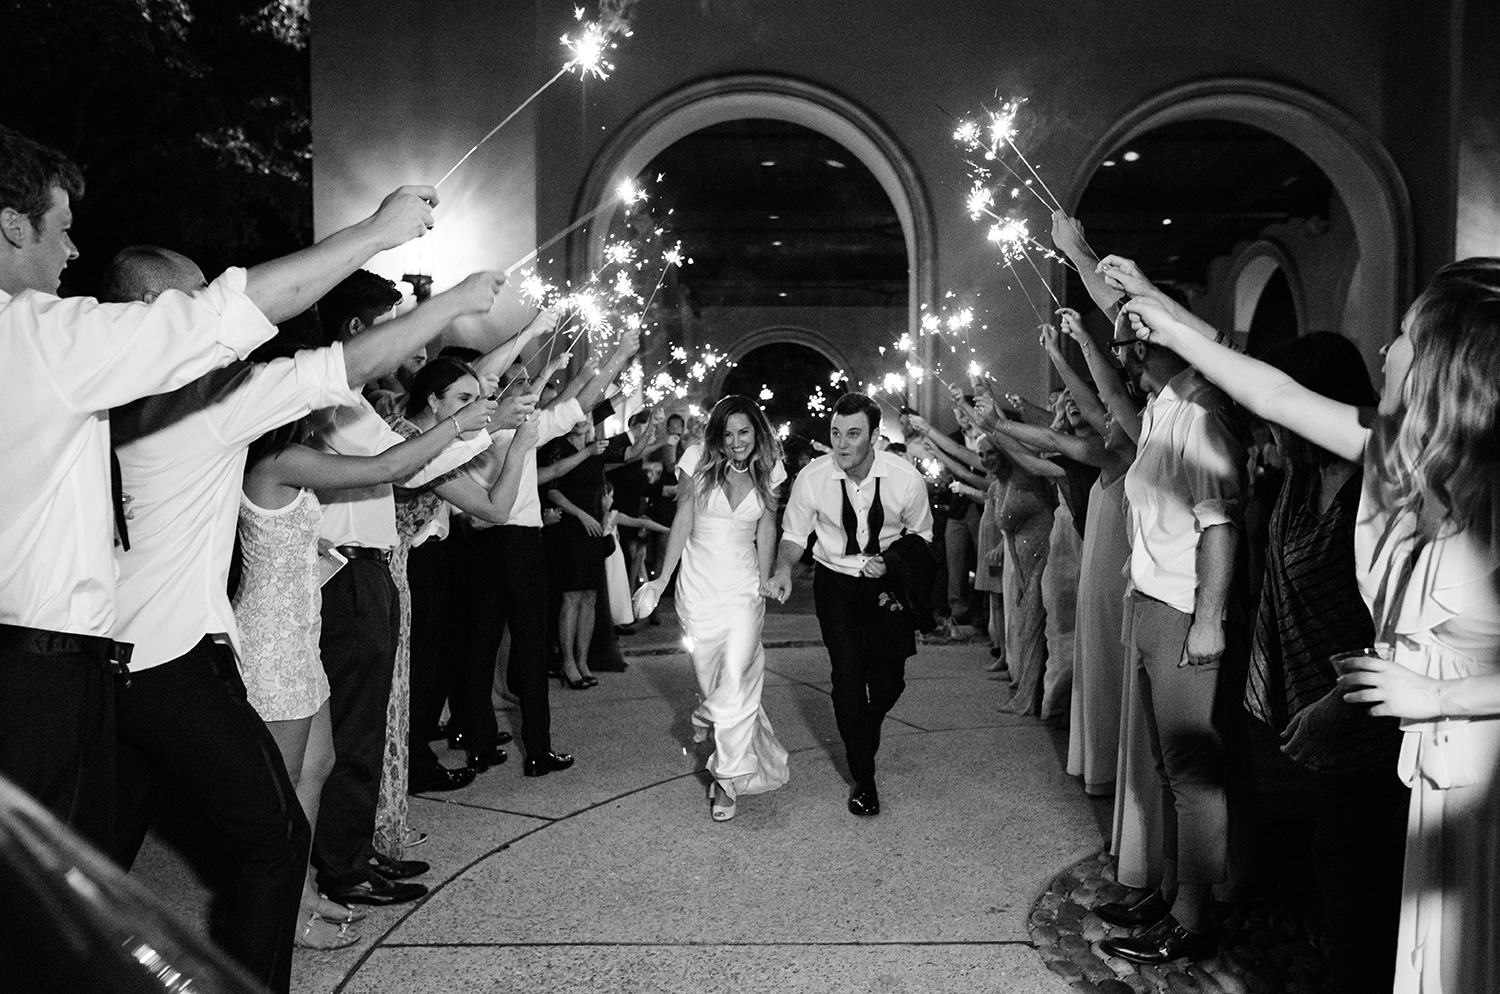 livvyland-blog-olivia-watson-wedding-villa-del-lago-austin-texas-fall-blush-burgundy-classic-romantic-sparkler-tunnel-run-car